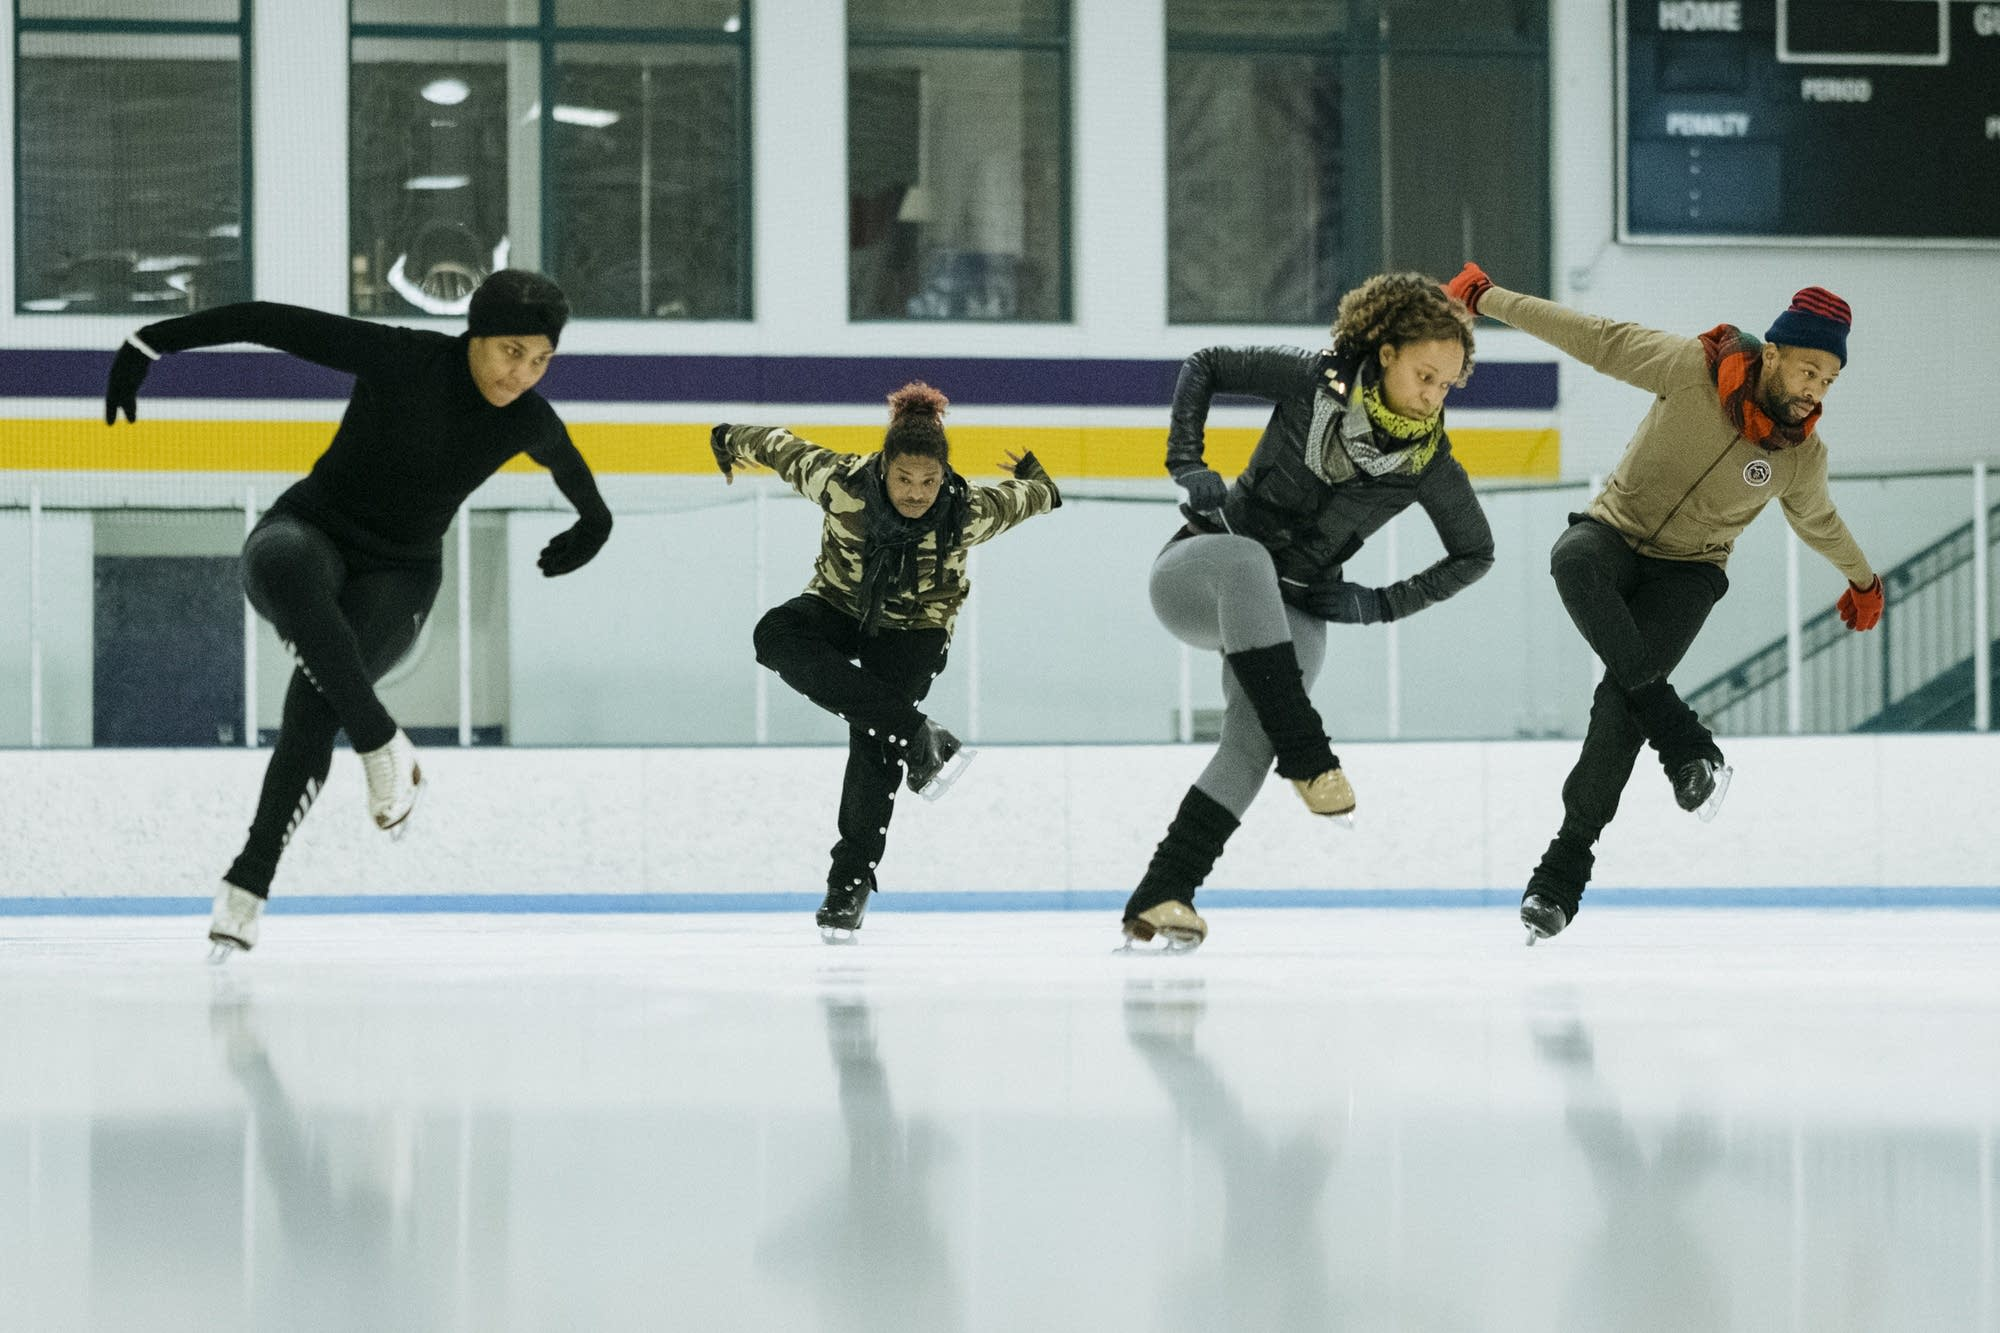 Brownbody skaters rehearse in unison.